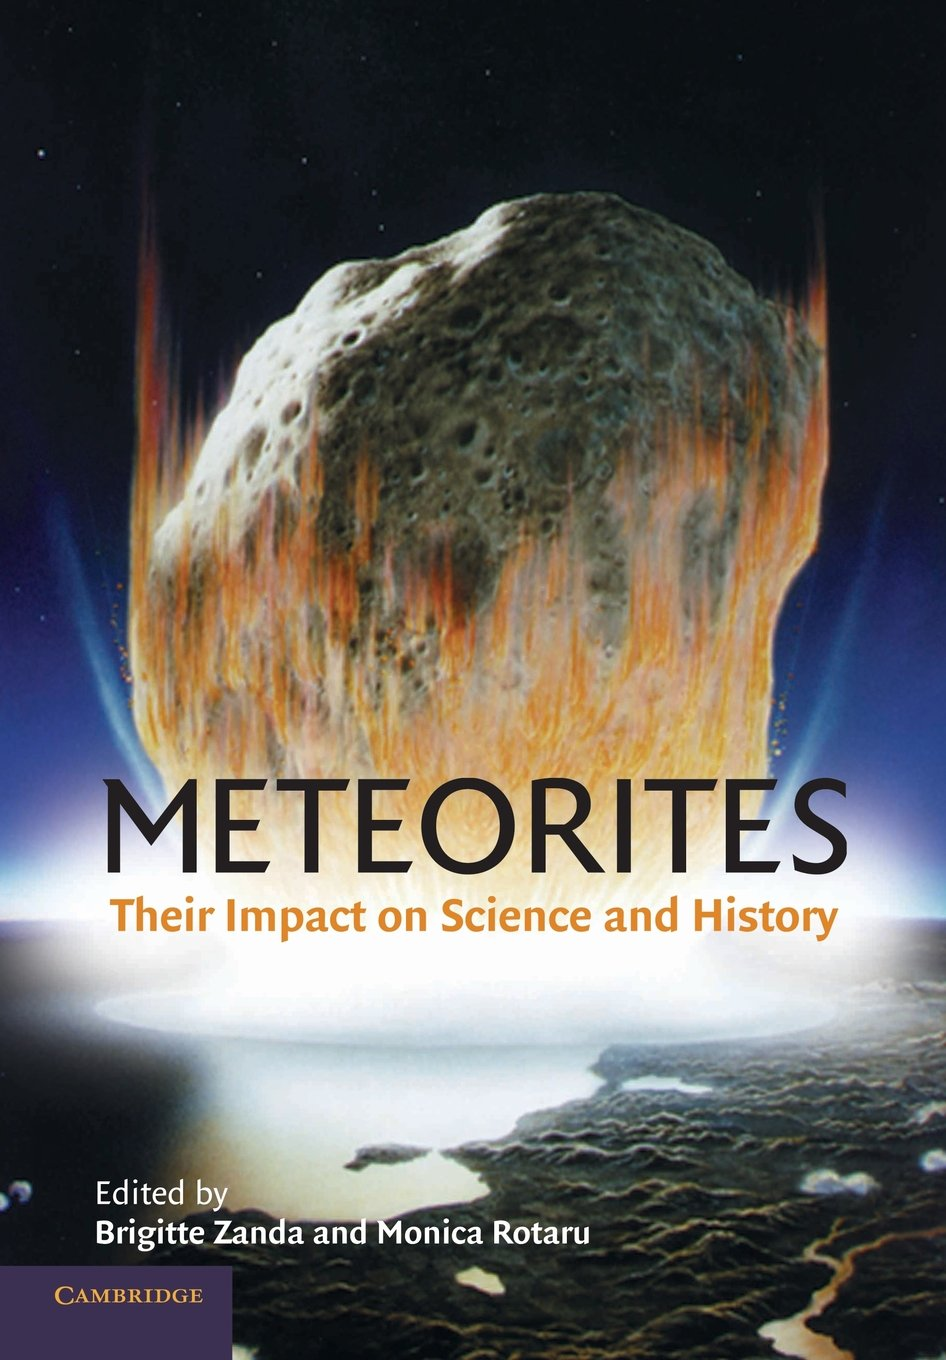 Meteorites: Their Impact on Science and History by Brand: Cambridge University Press